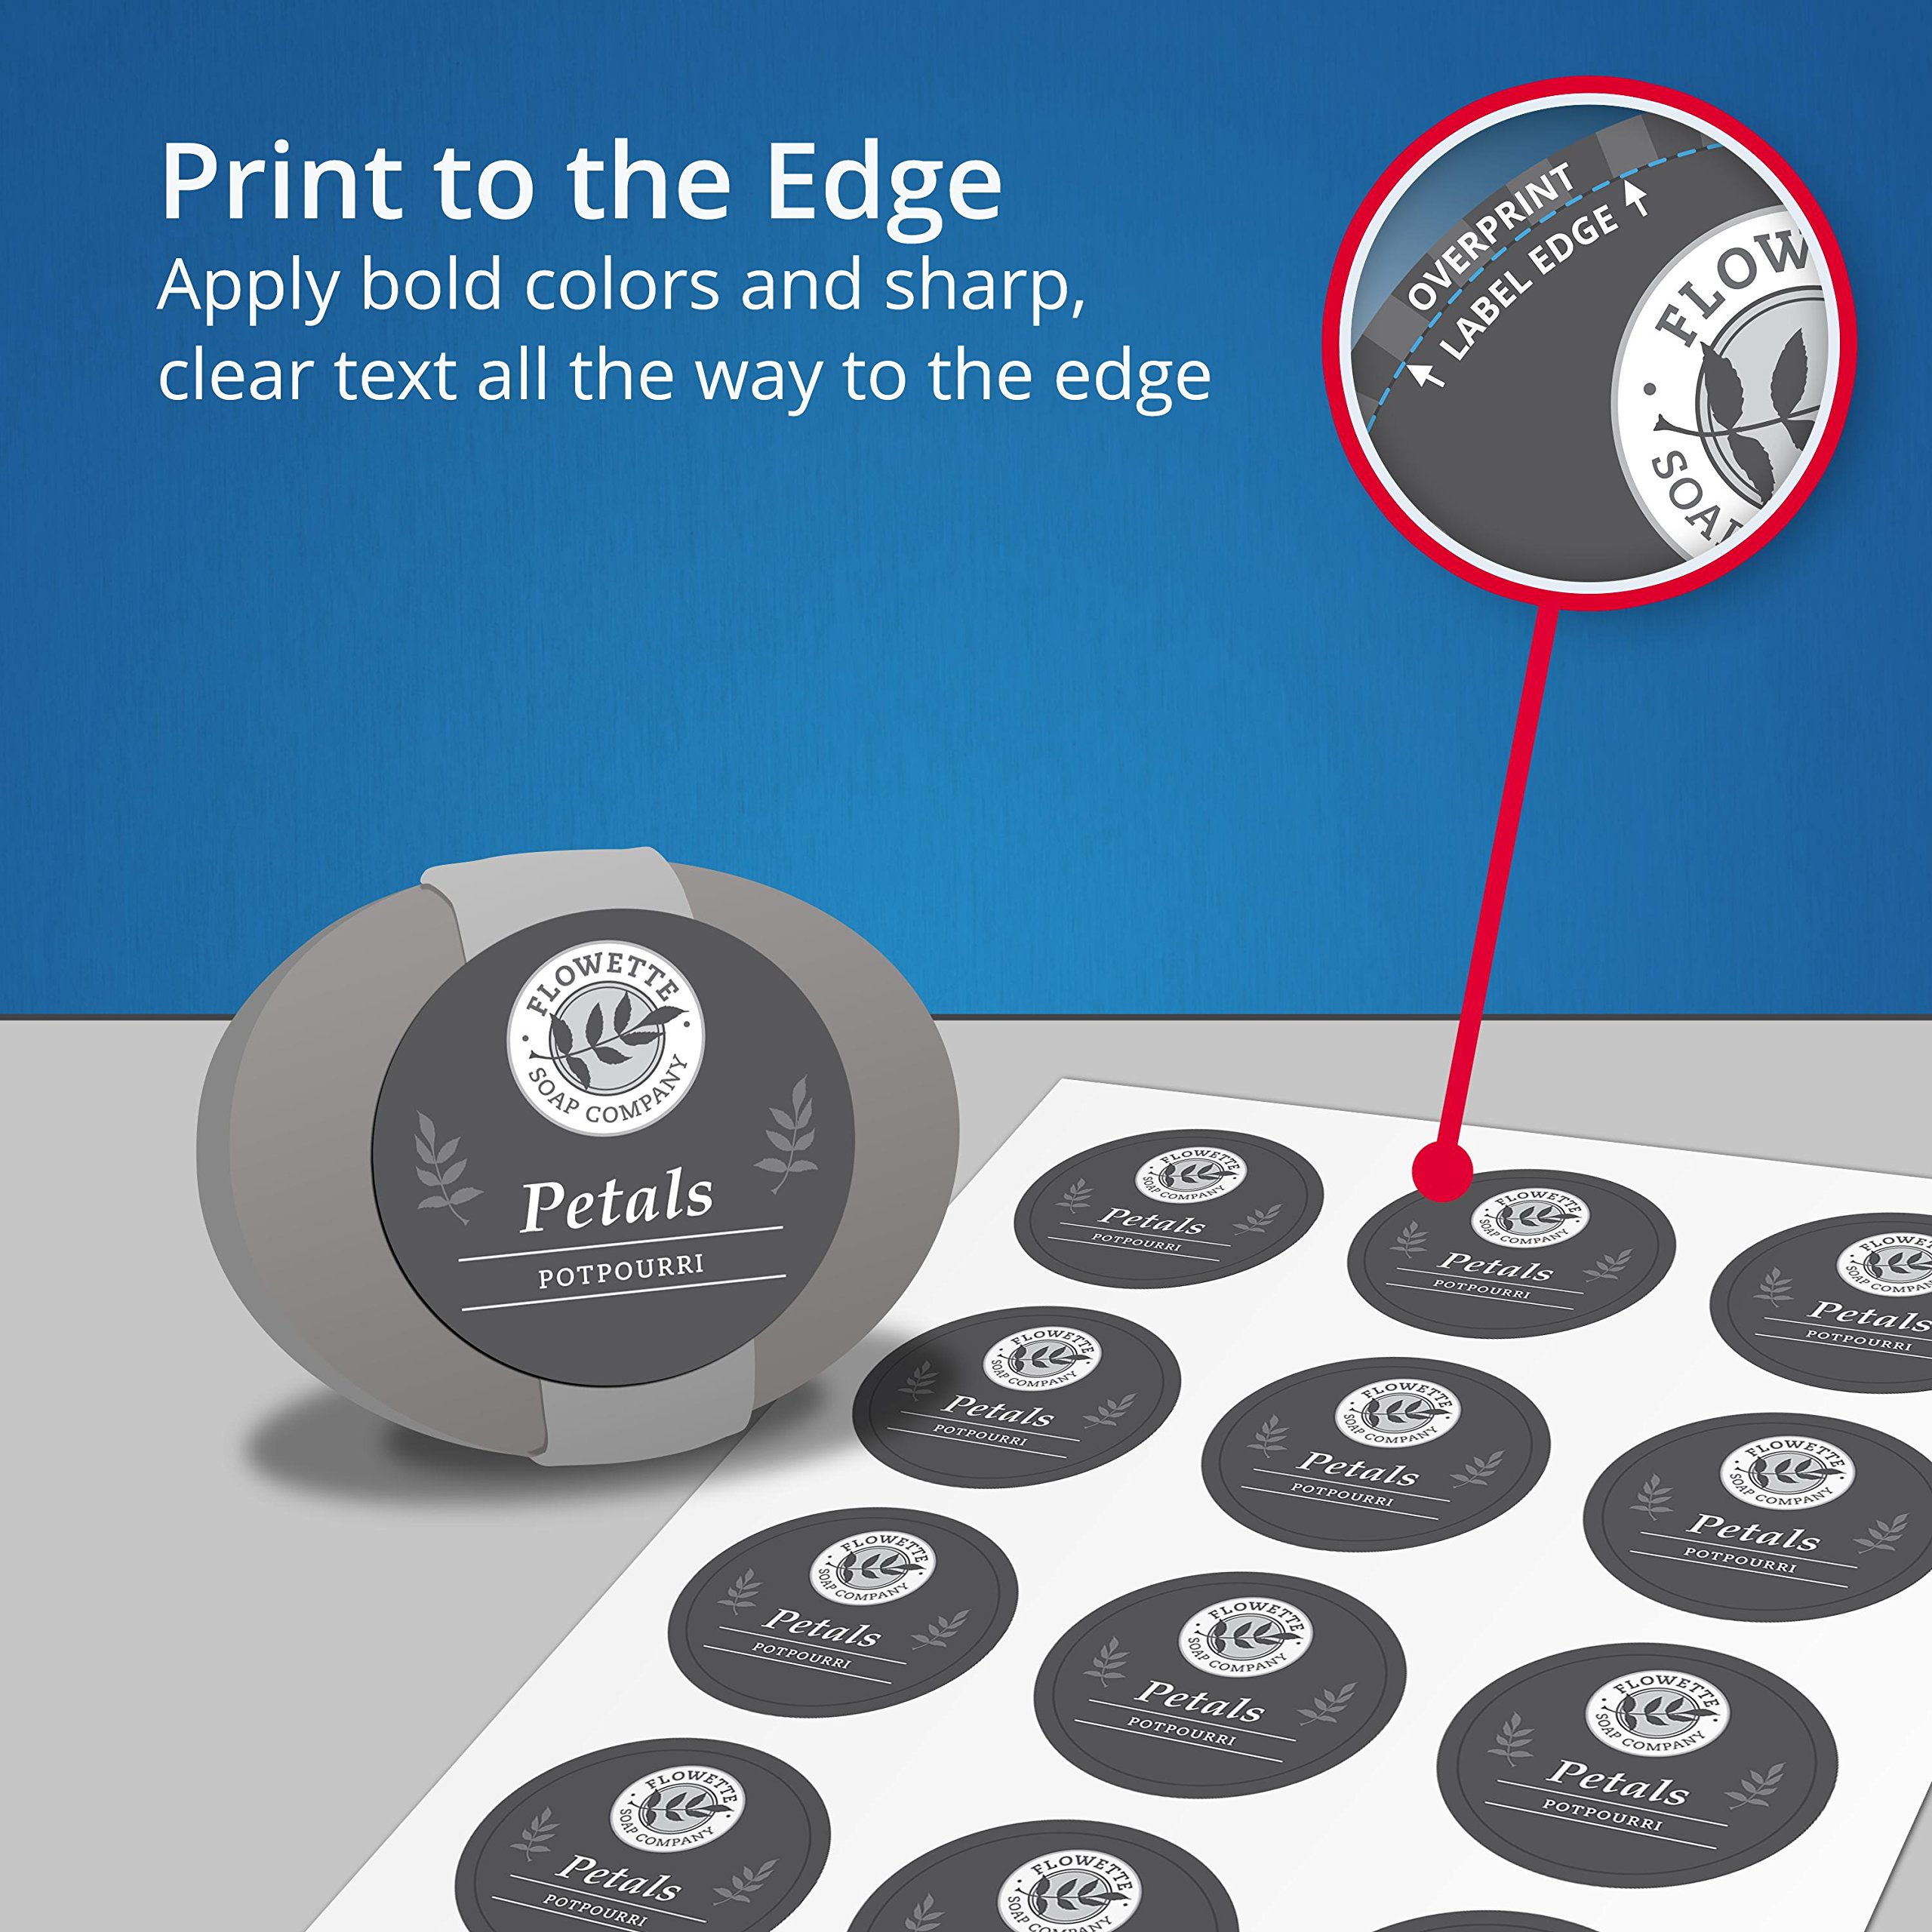 Avery Print to The Edge Round Labels, 2'' Diameter, Matte White, Pack of 300 (22877) by Avery (Image #4)